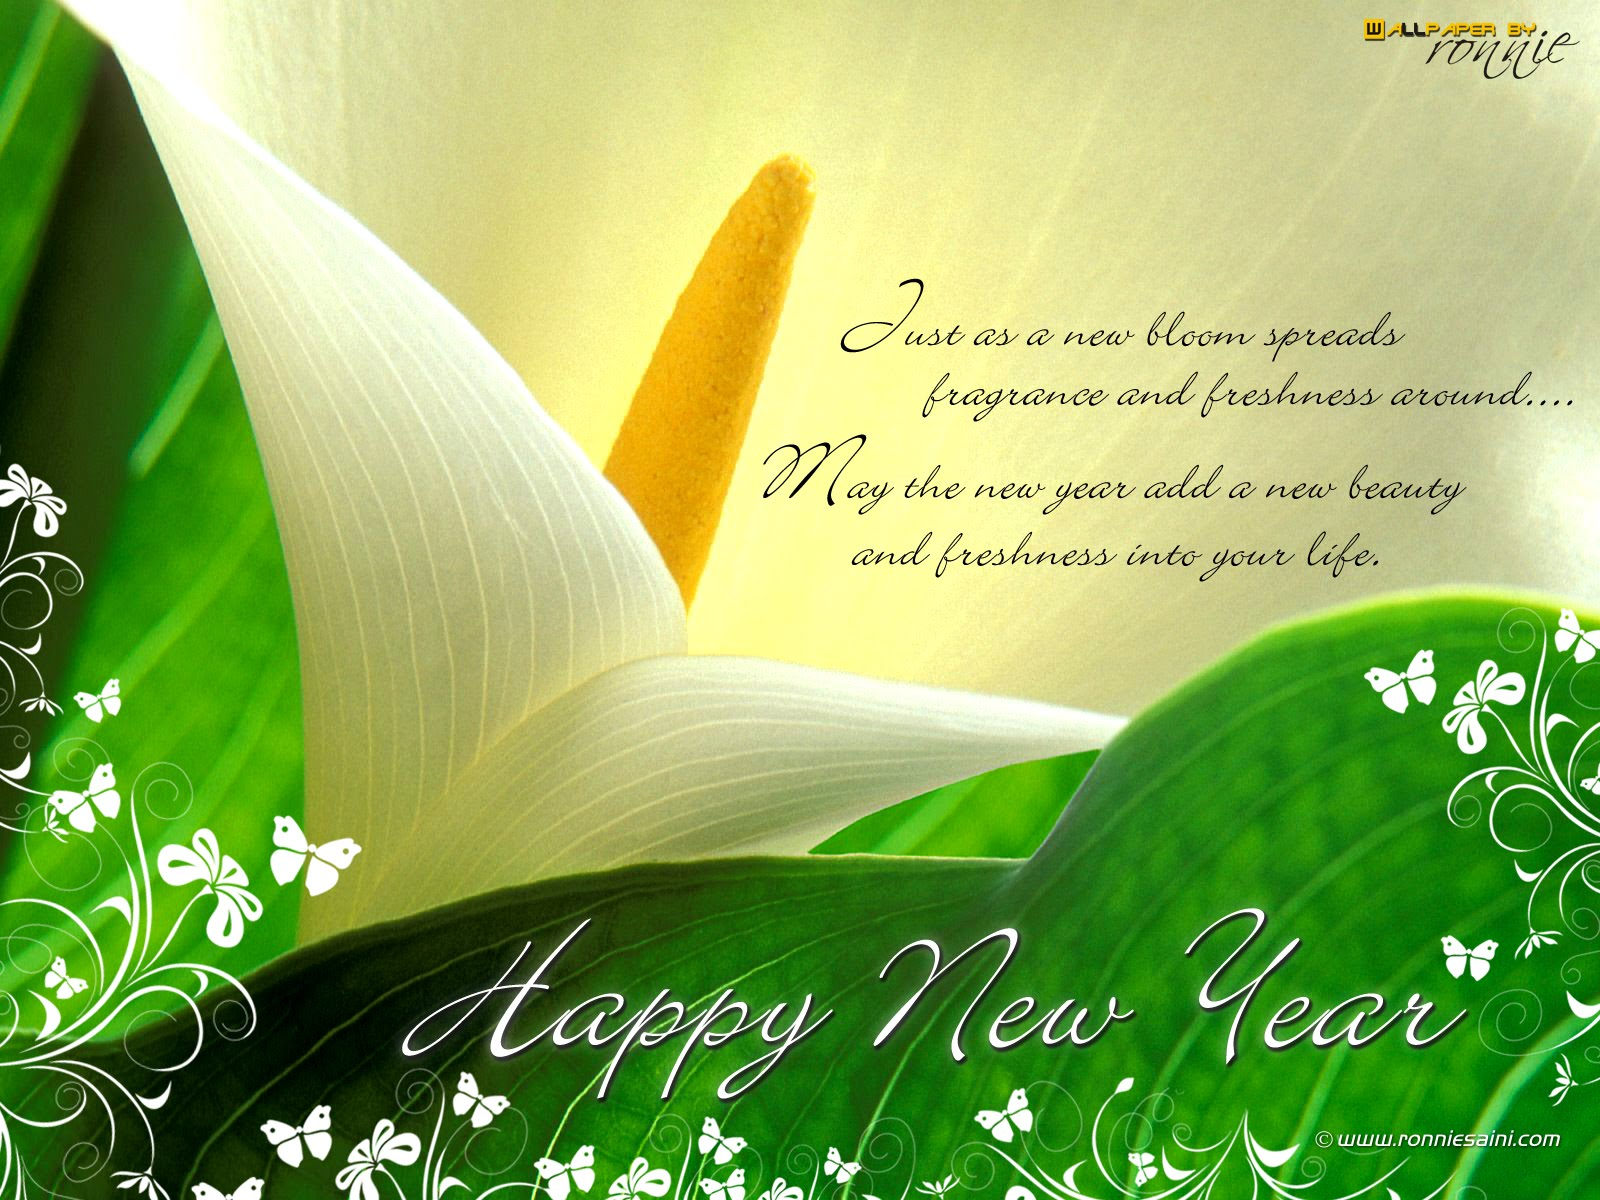 Happy New Year Wishes and Greetings. 1600 x 1200.Christian New Year Greetings Sayings